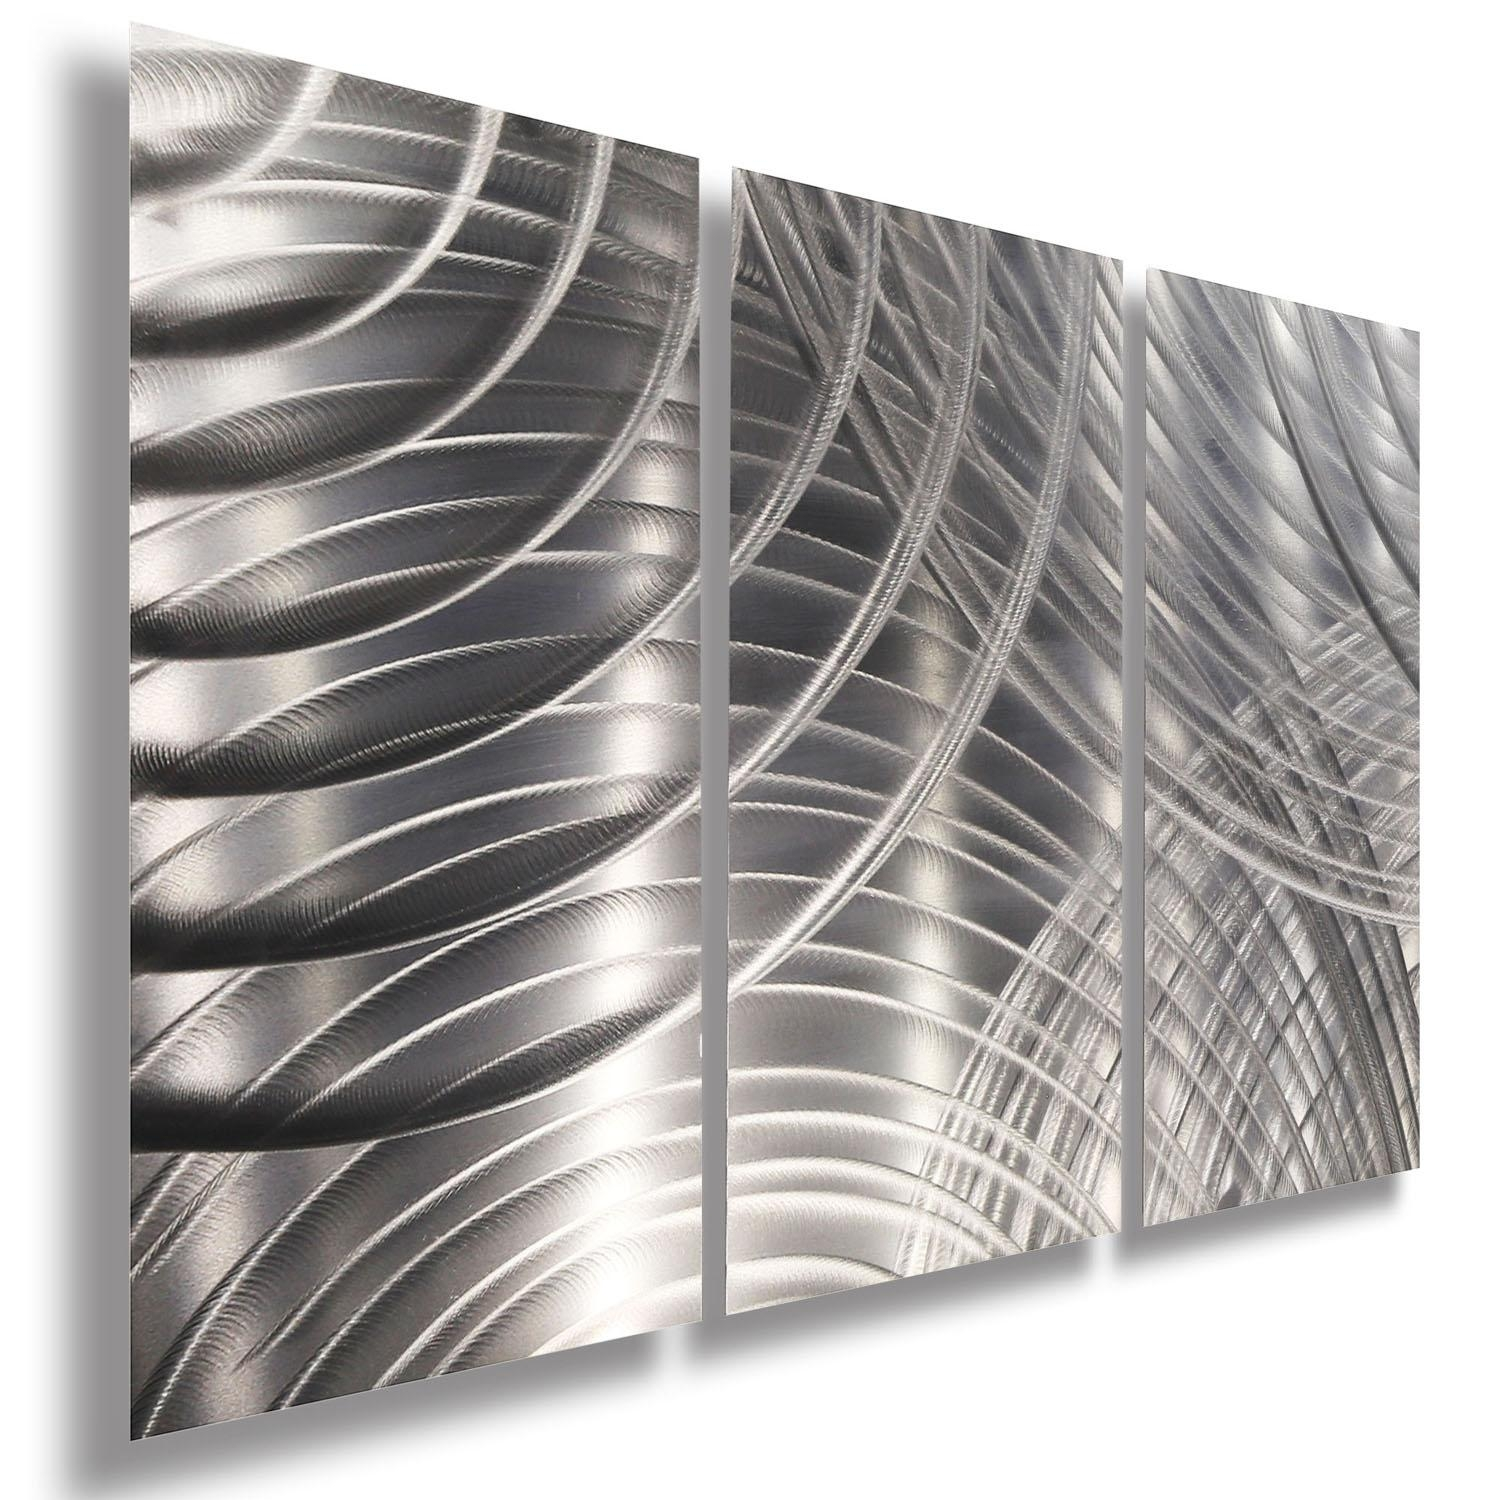 Equinox Ii 3P – All Silver 3 Panel Metal Wall Art Accentjon Intended For Black Silver Wall Art (View 10 of 20)